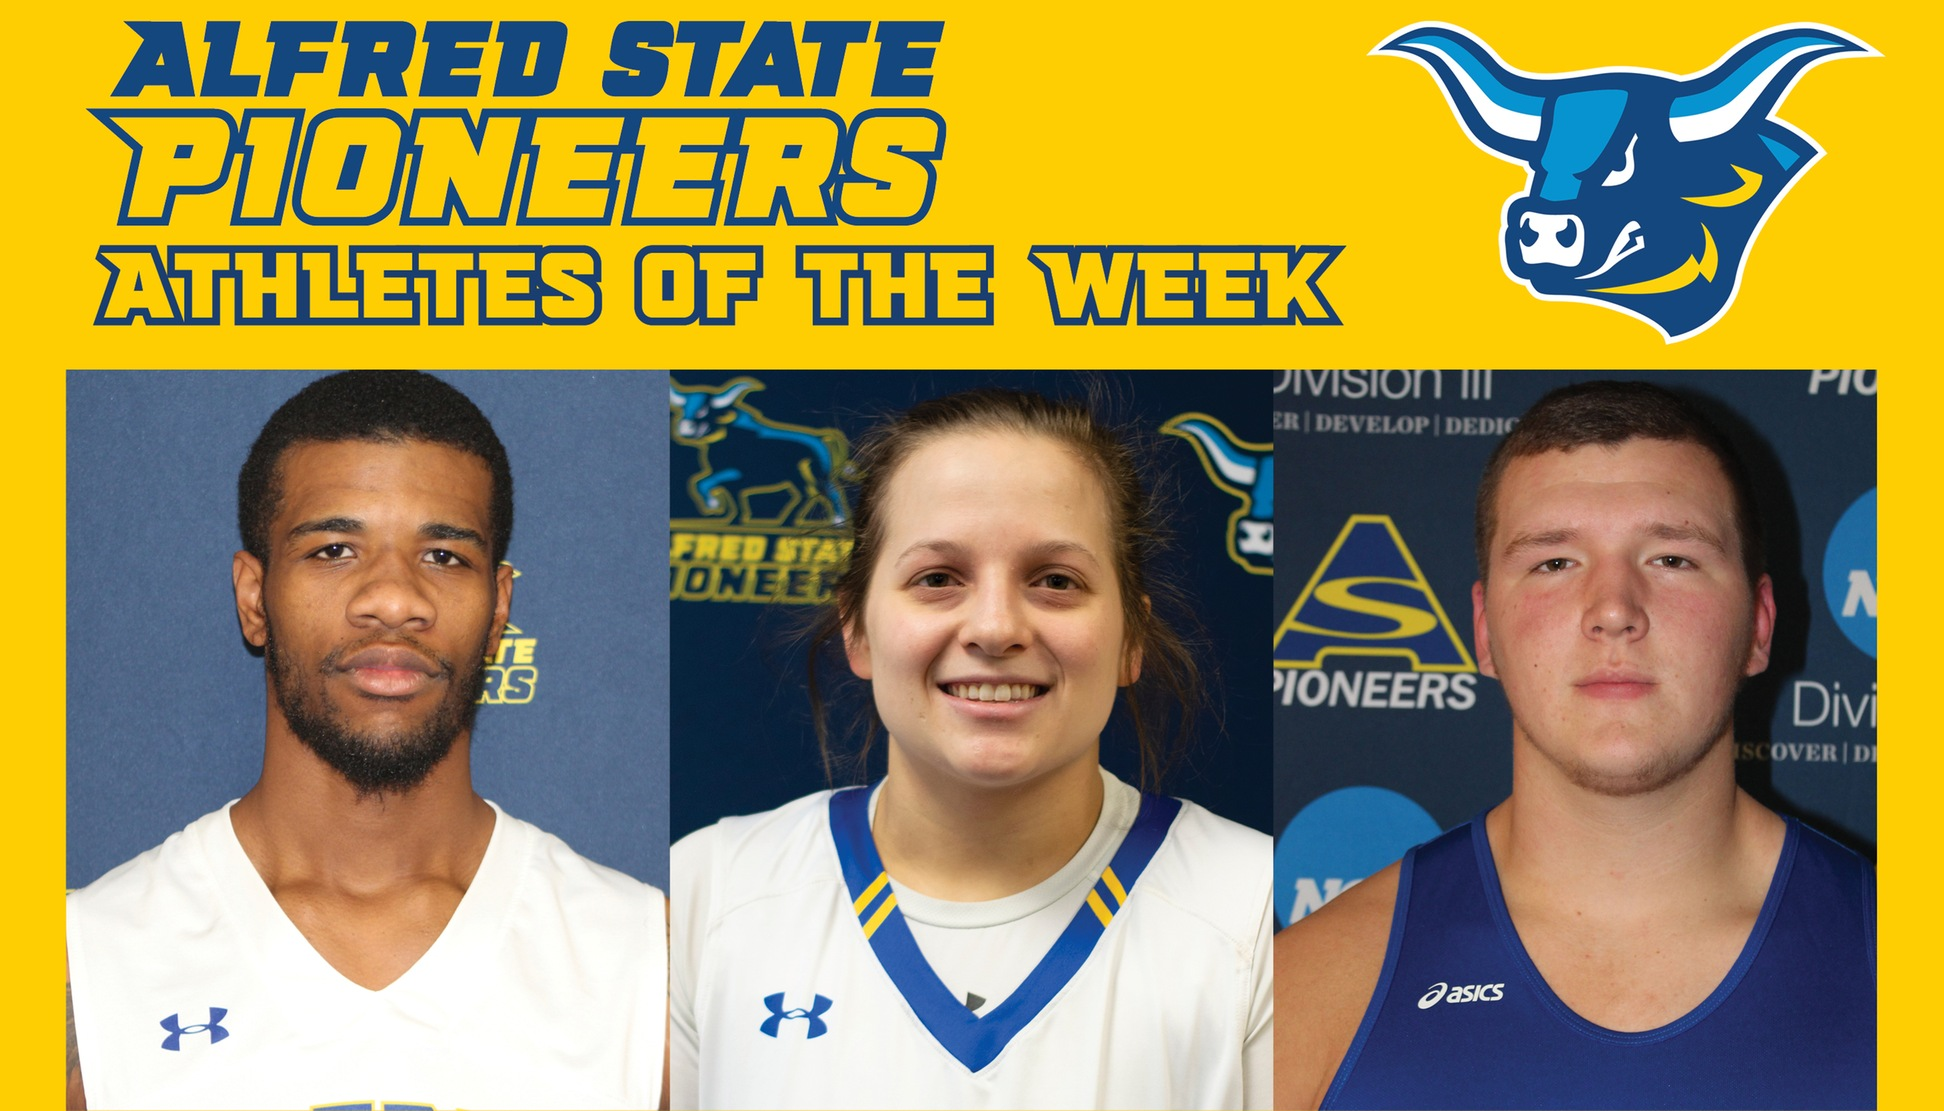 Taj Lewis, Ray Anderson, and Paul Kemsley Named Athletes of the Week.